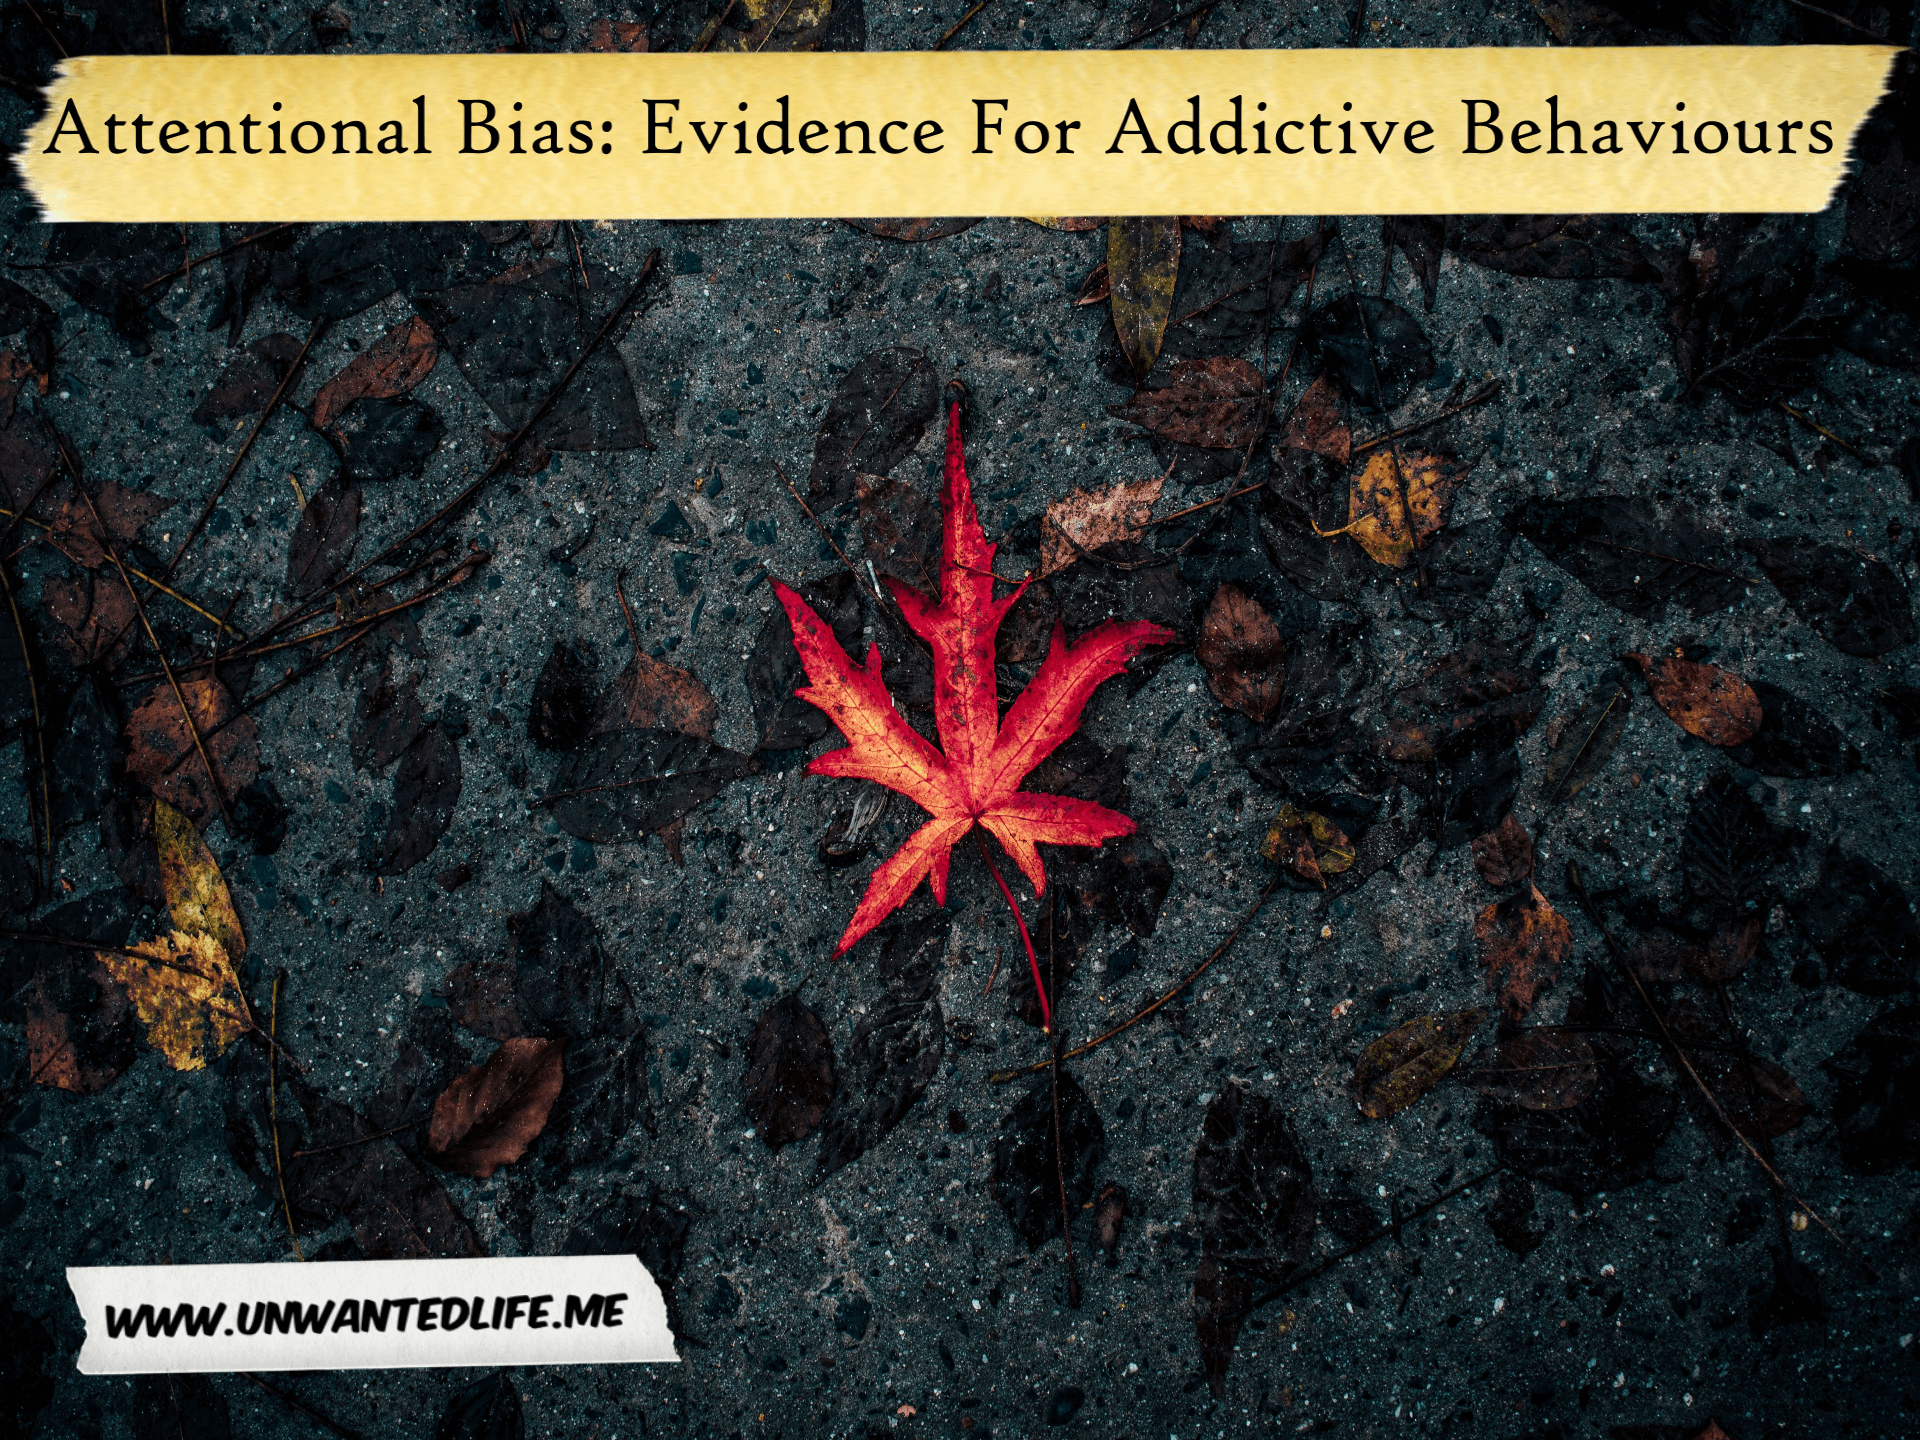 Attentional Bias: Evidence For Addictive Behaviours | Mental Health and Wellness | Unwanted Life